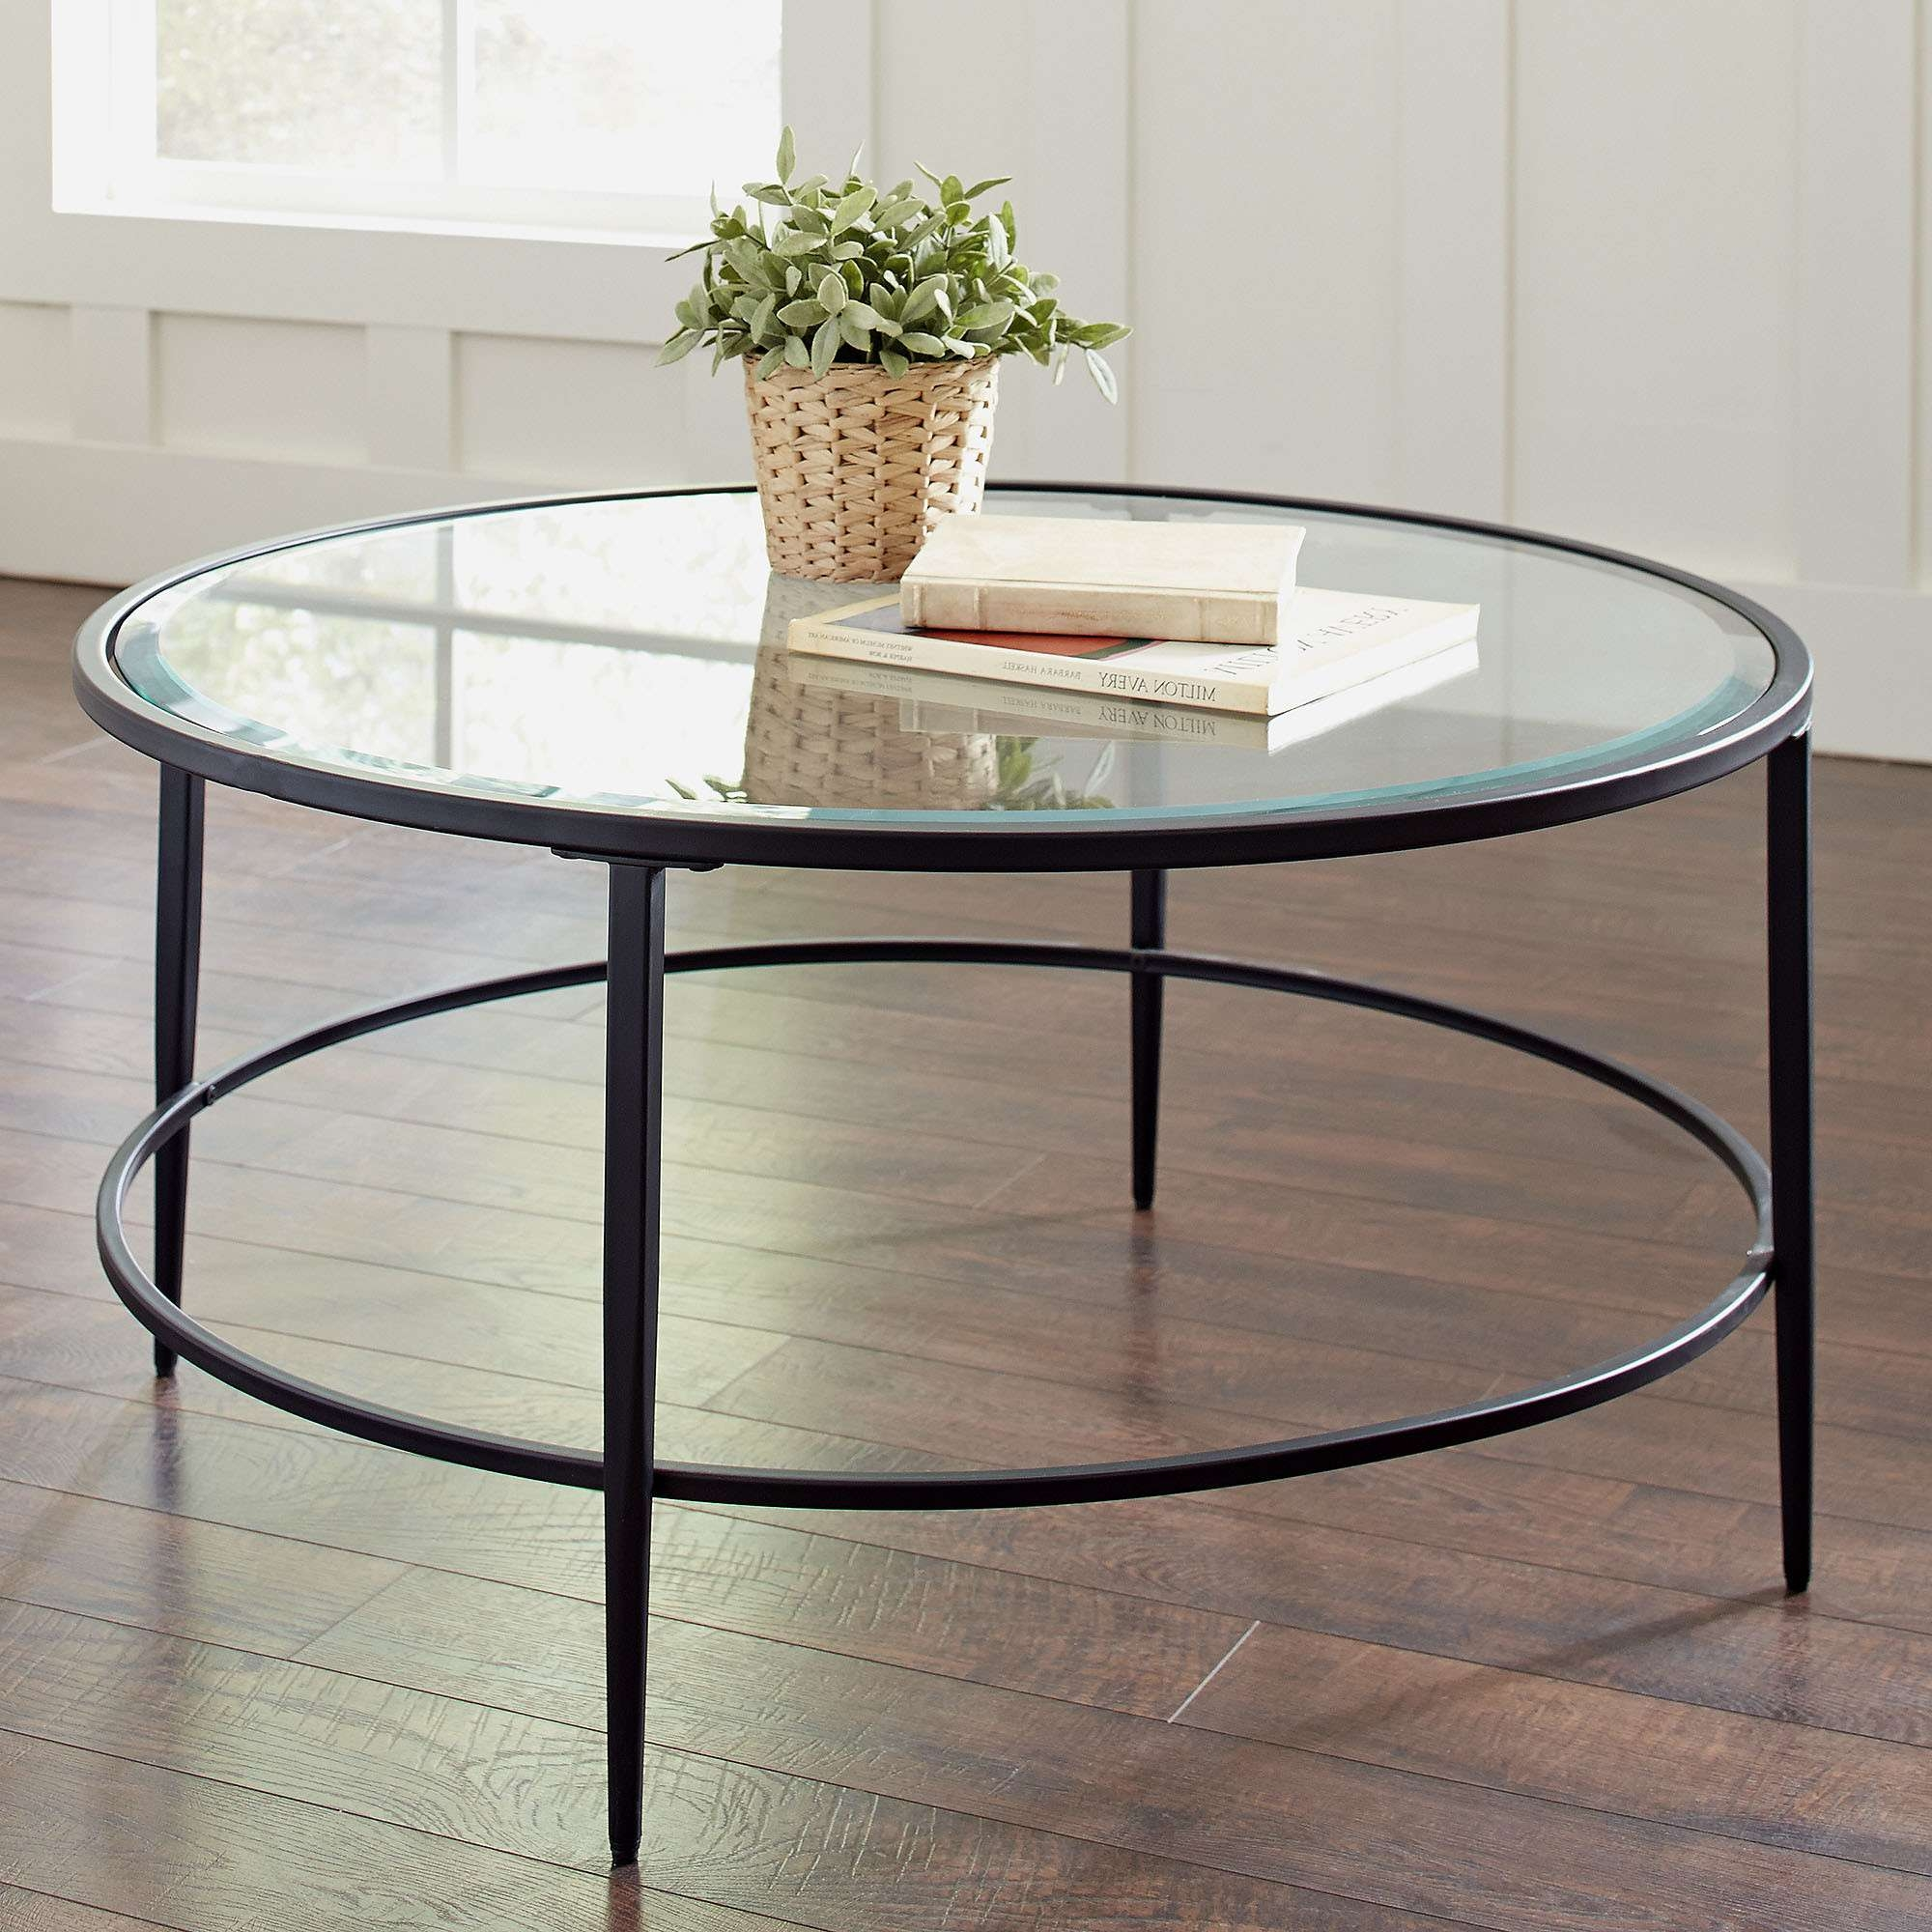 2017 Oversized Round Coffee Tables Within Coffee Table : Magnificent Black Modern Coffee Table Modern Glass (View 3 of 20)